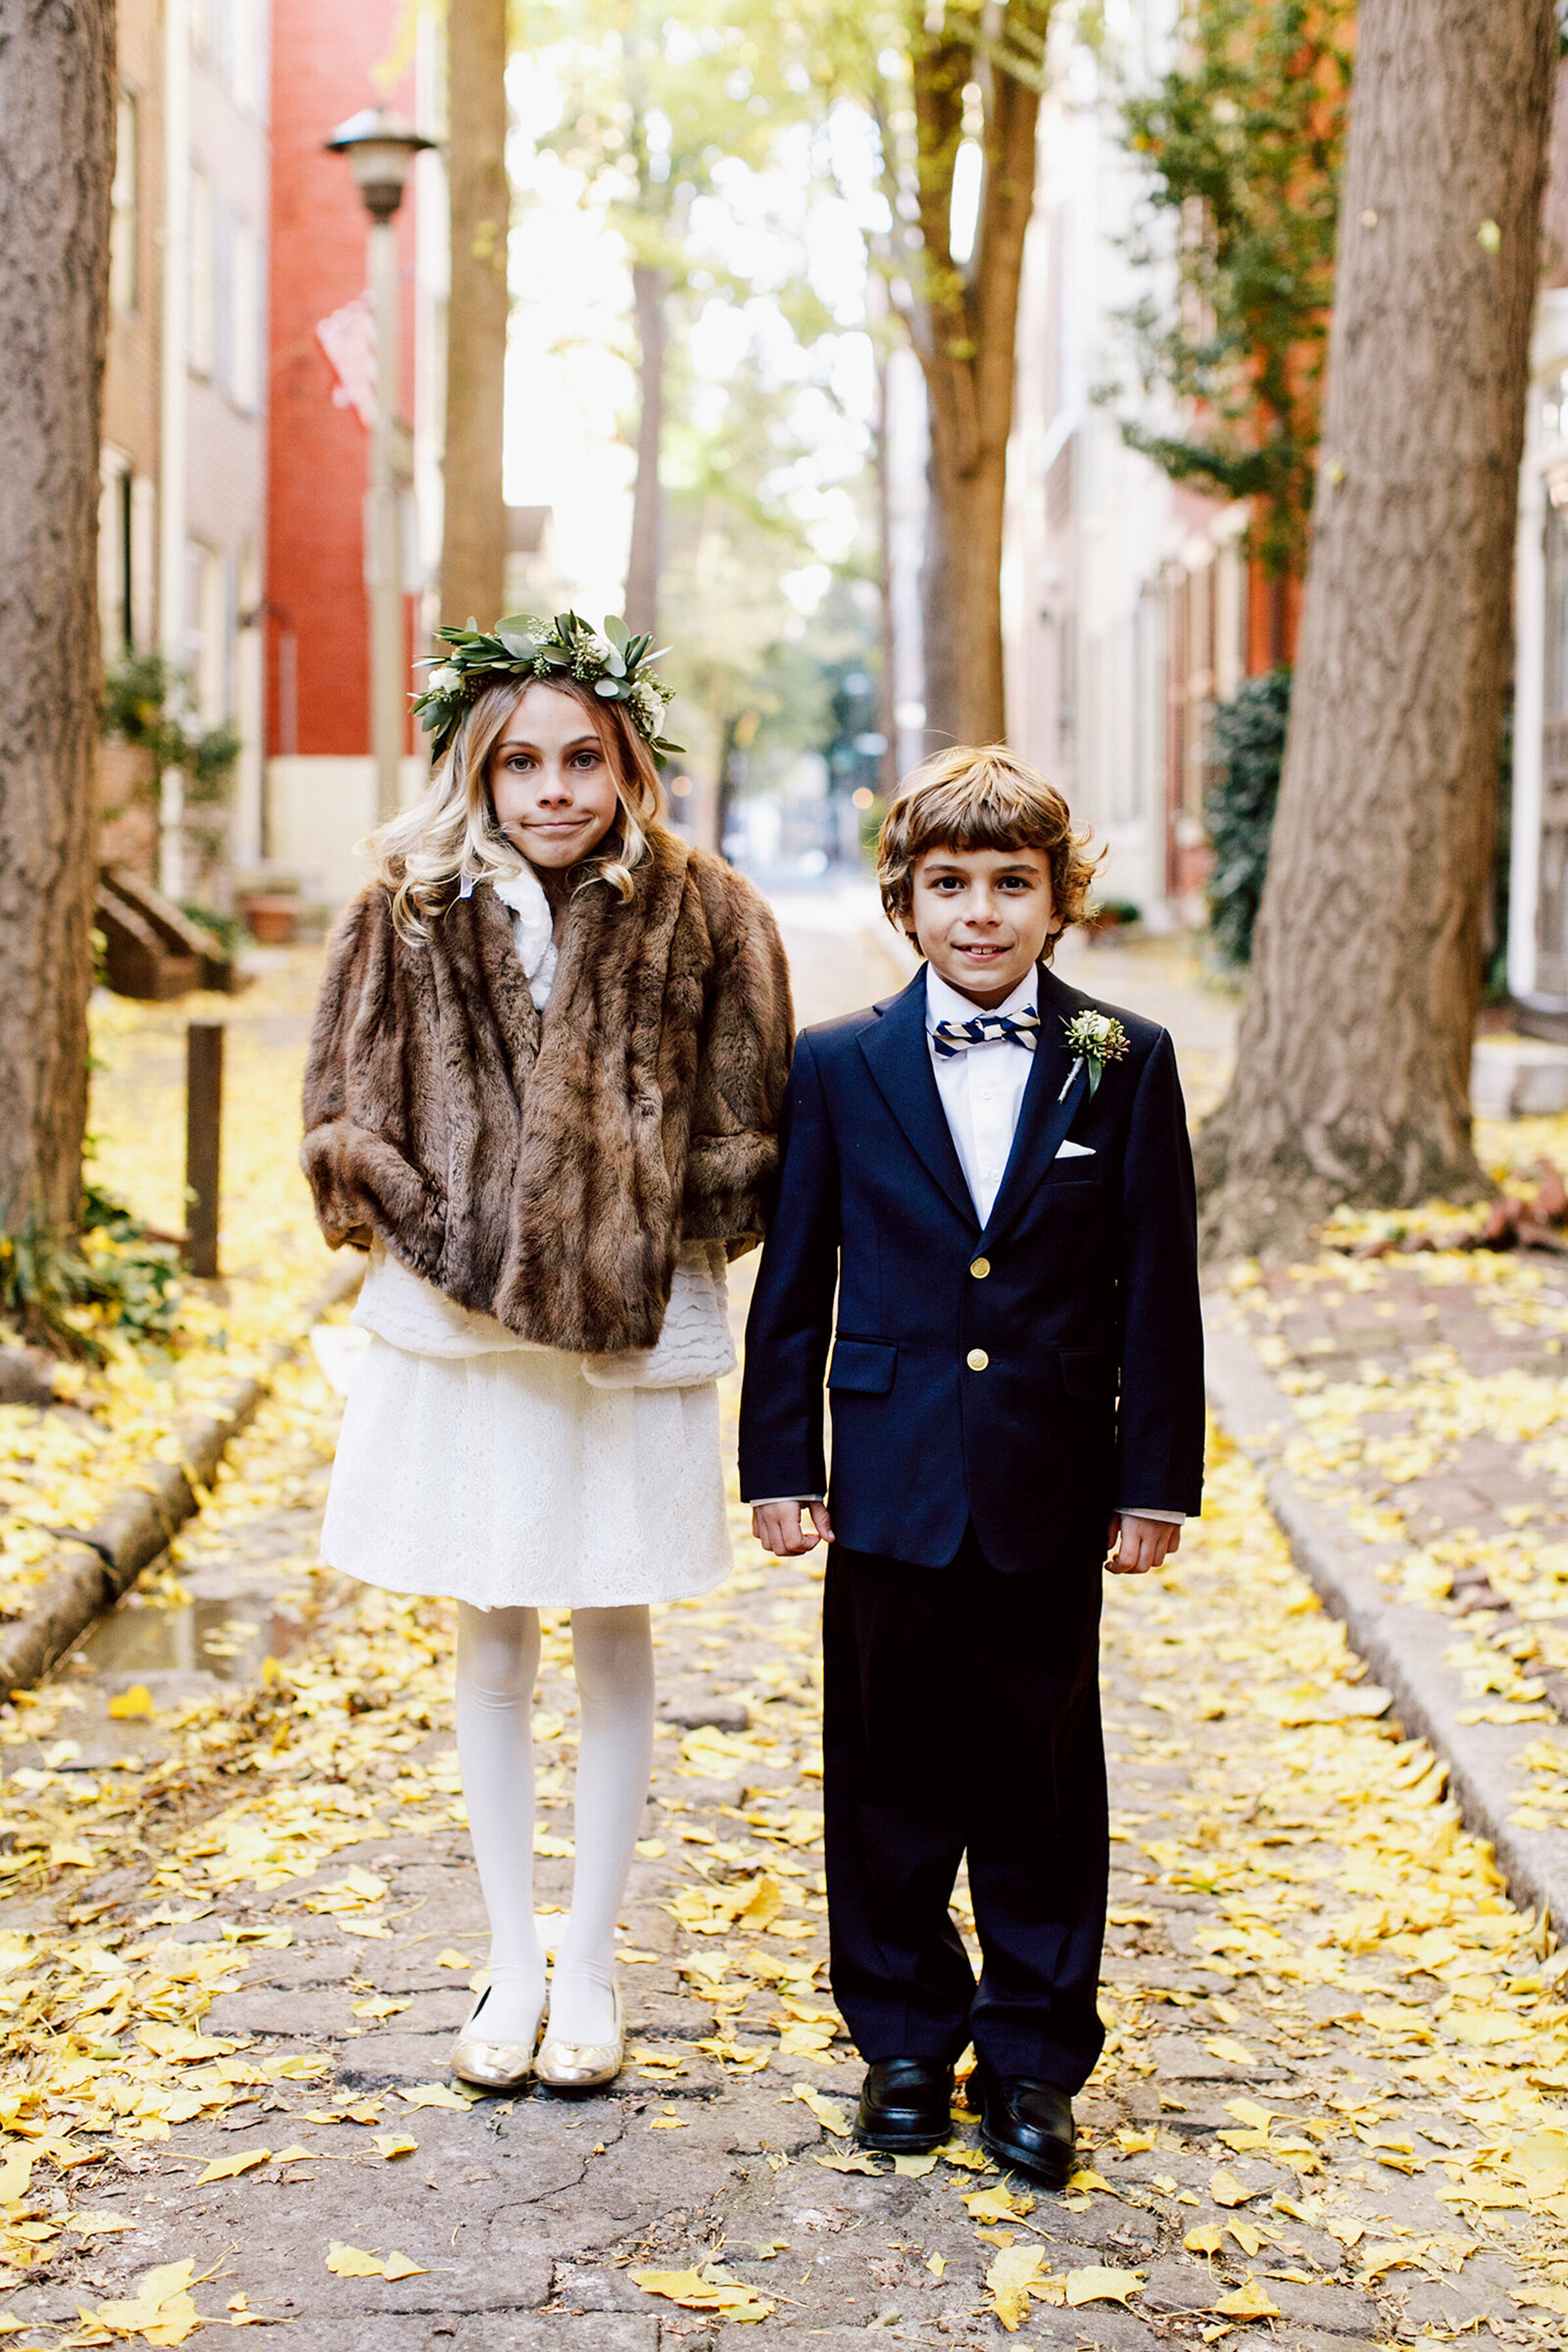 flower girl and ring bearer in city fall leaves